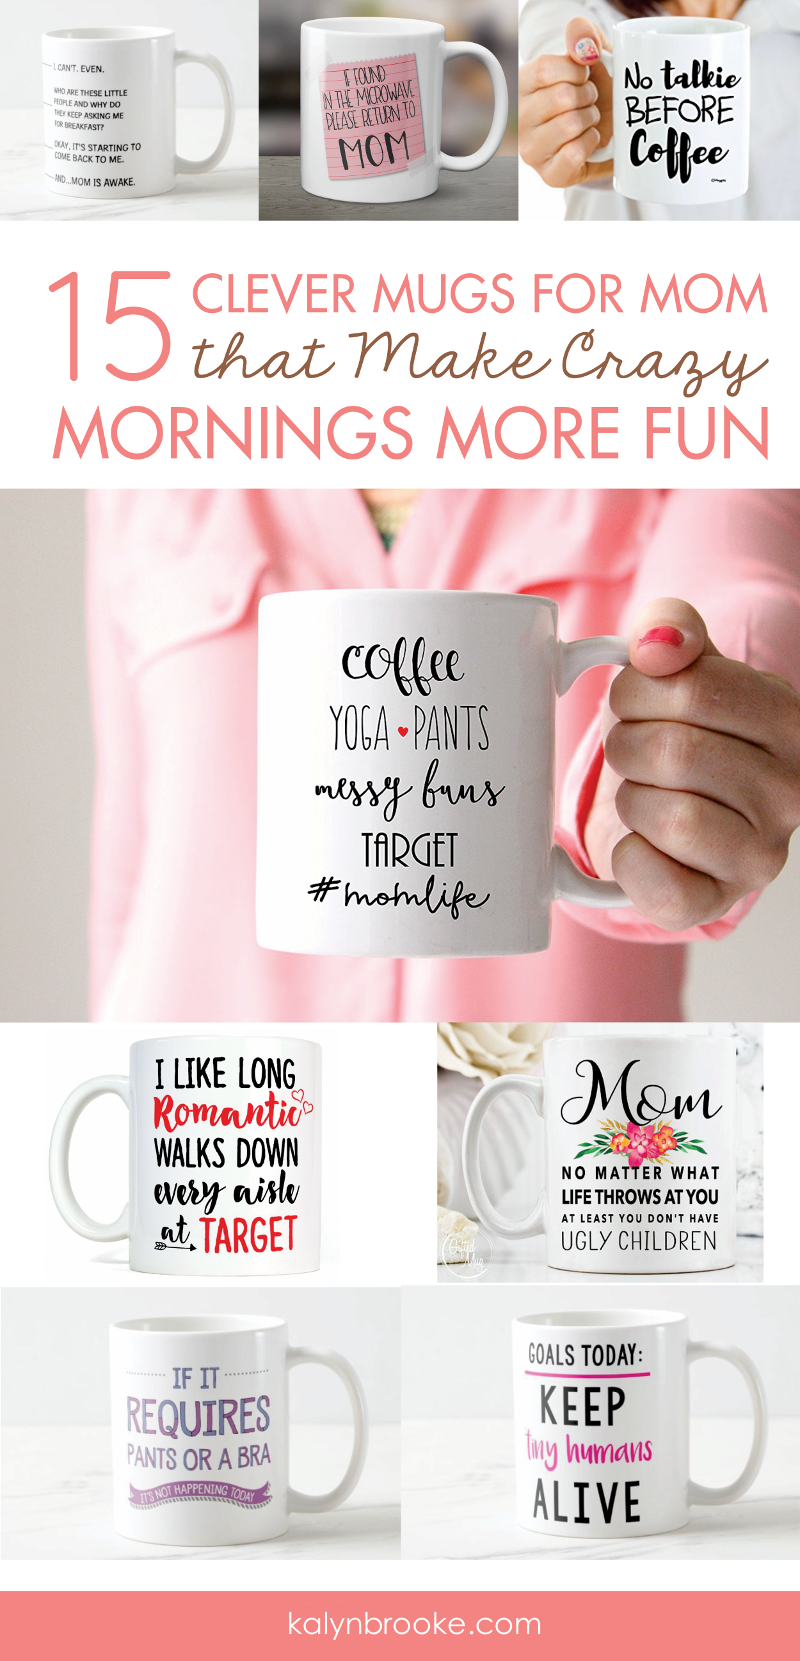 Forum on this topic: 15 funny and unique Mothers Day gifts , 15-funny-and-unique-mothers-day-gifts/